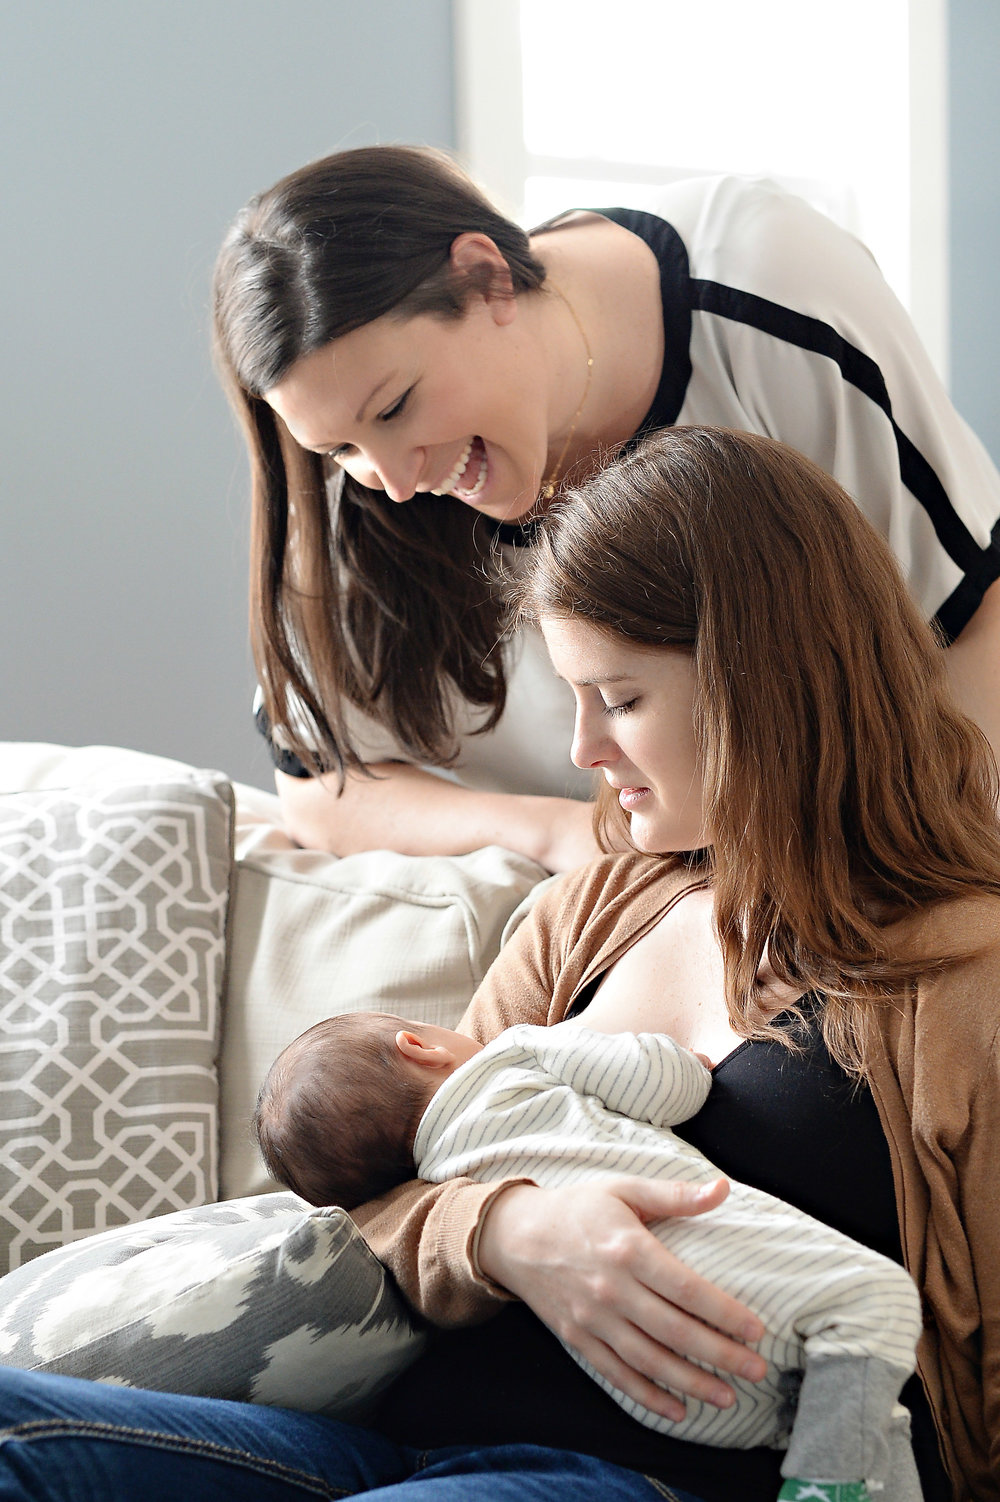 Frequently asked questions about moms breastfeeding